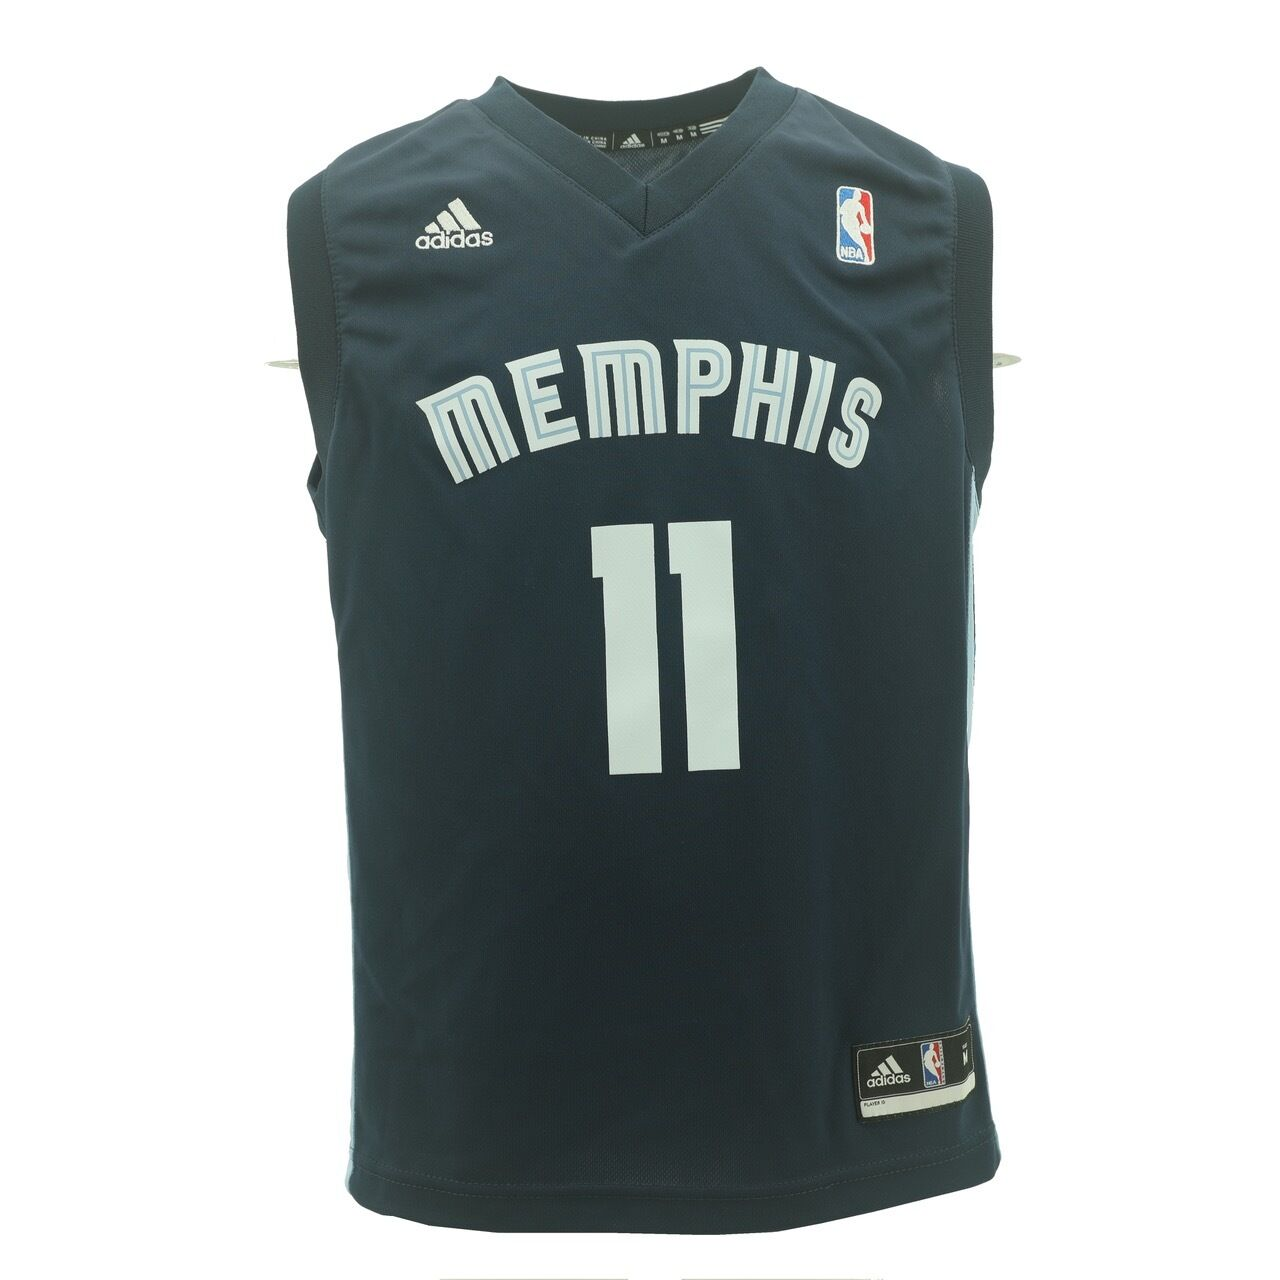 buy online 11113 33c20 Details about Memphis Grizzlies Youth Size Mike Conley Jr. Adidas NBA  Jersey New With Tags